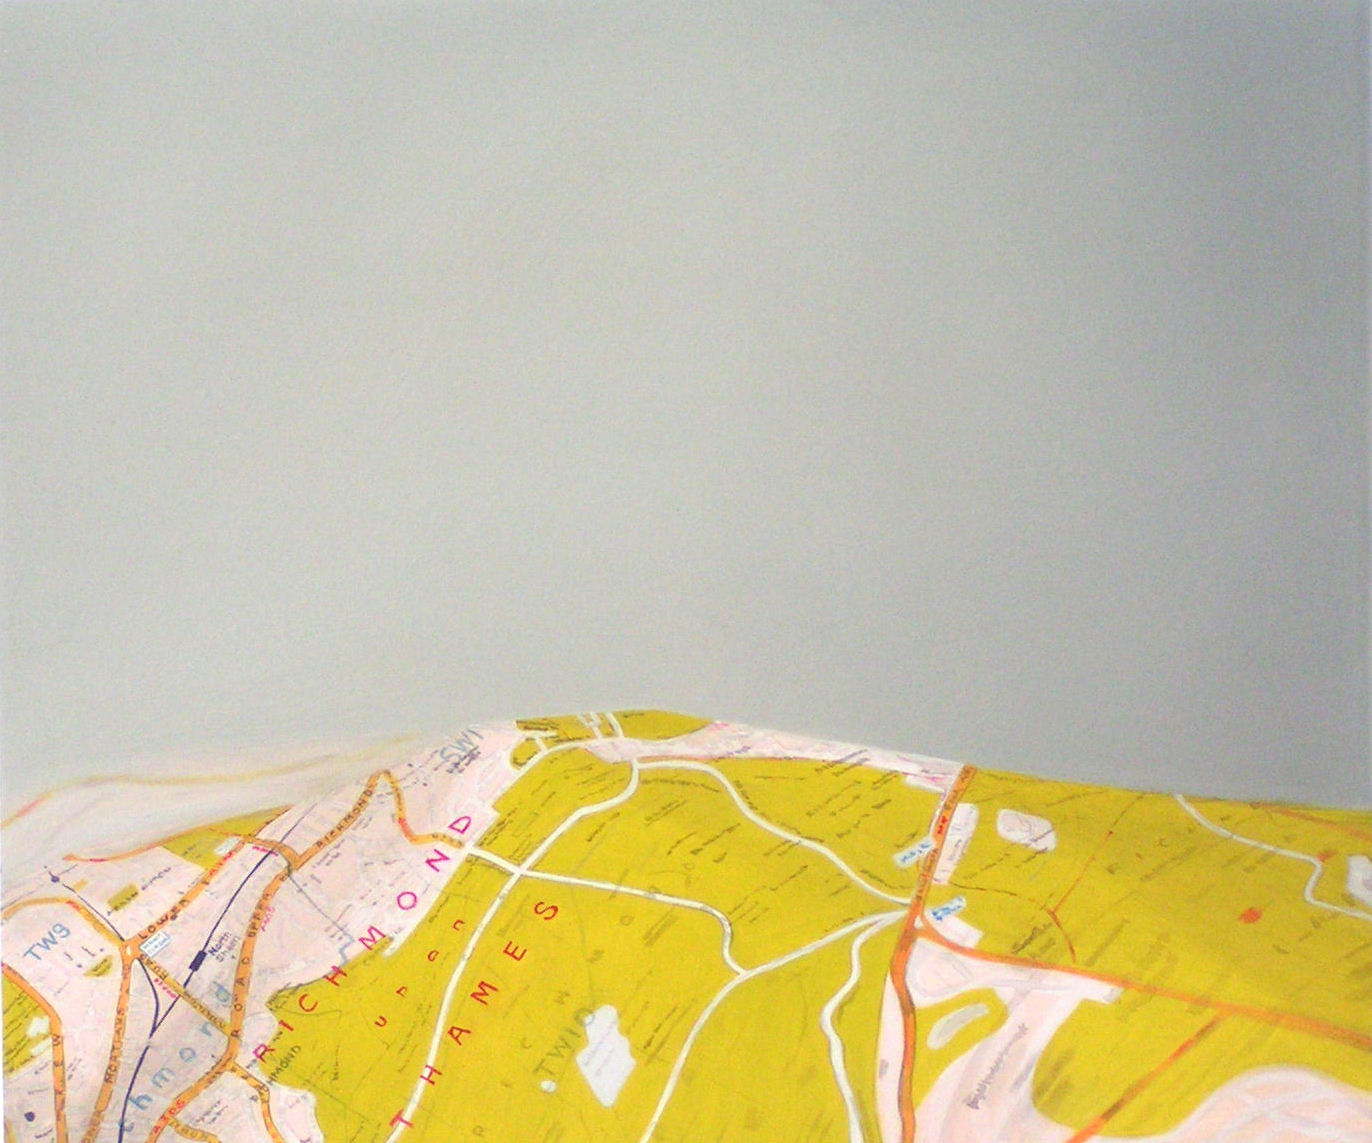 Emma J Williams 'Marylebone flyover' 2002 oil on board